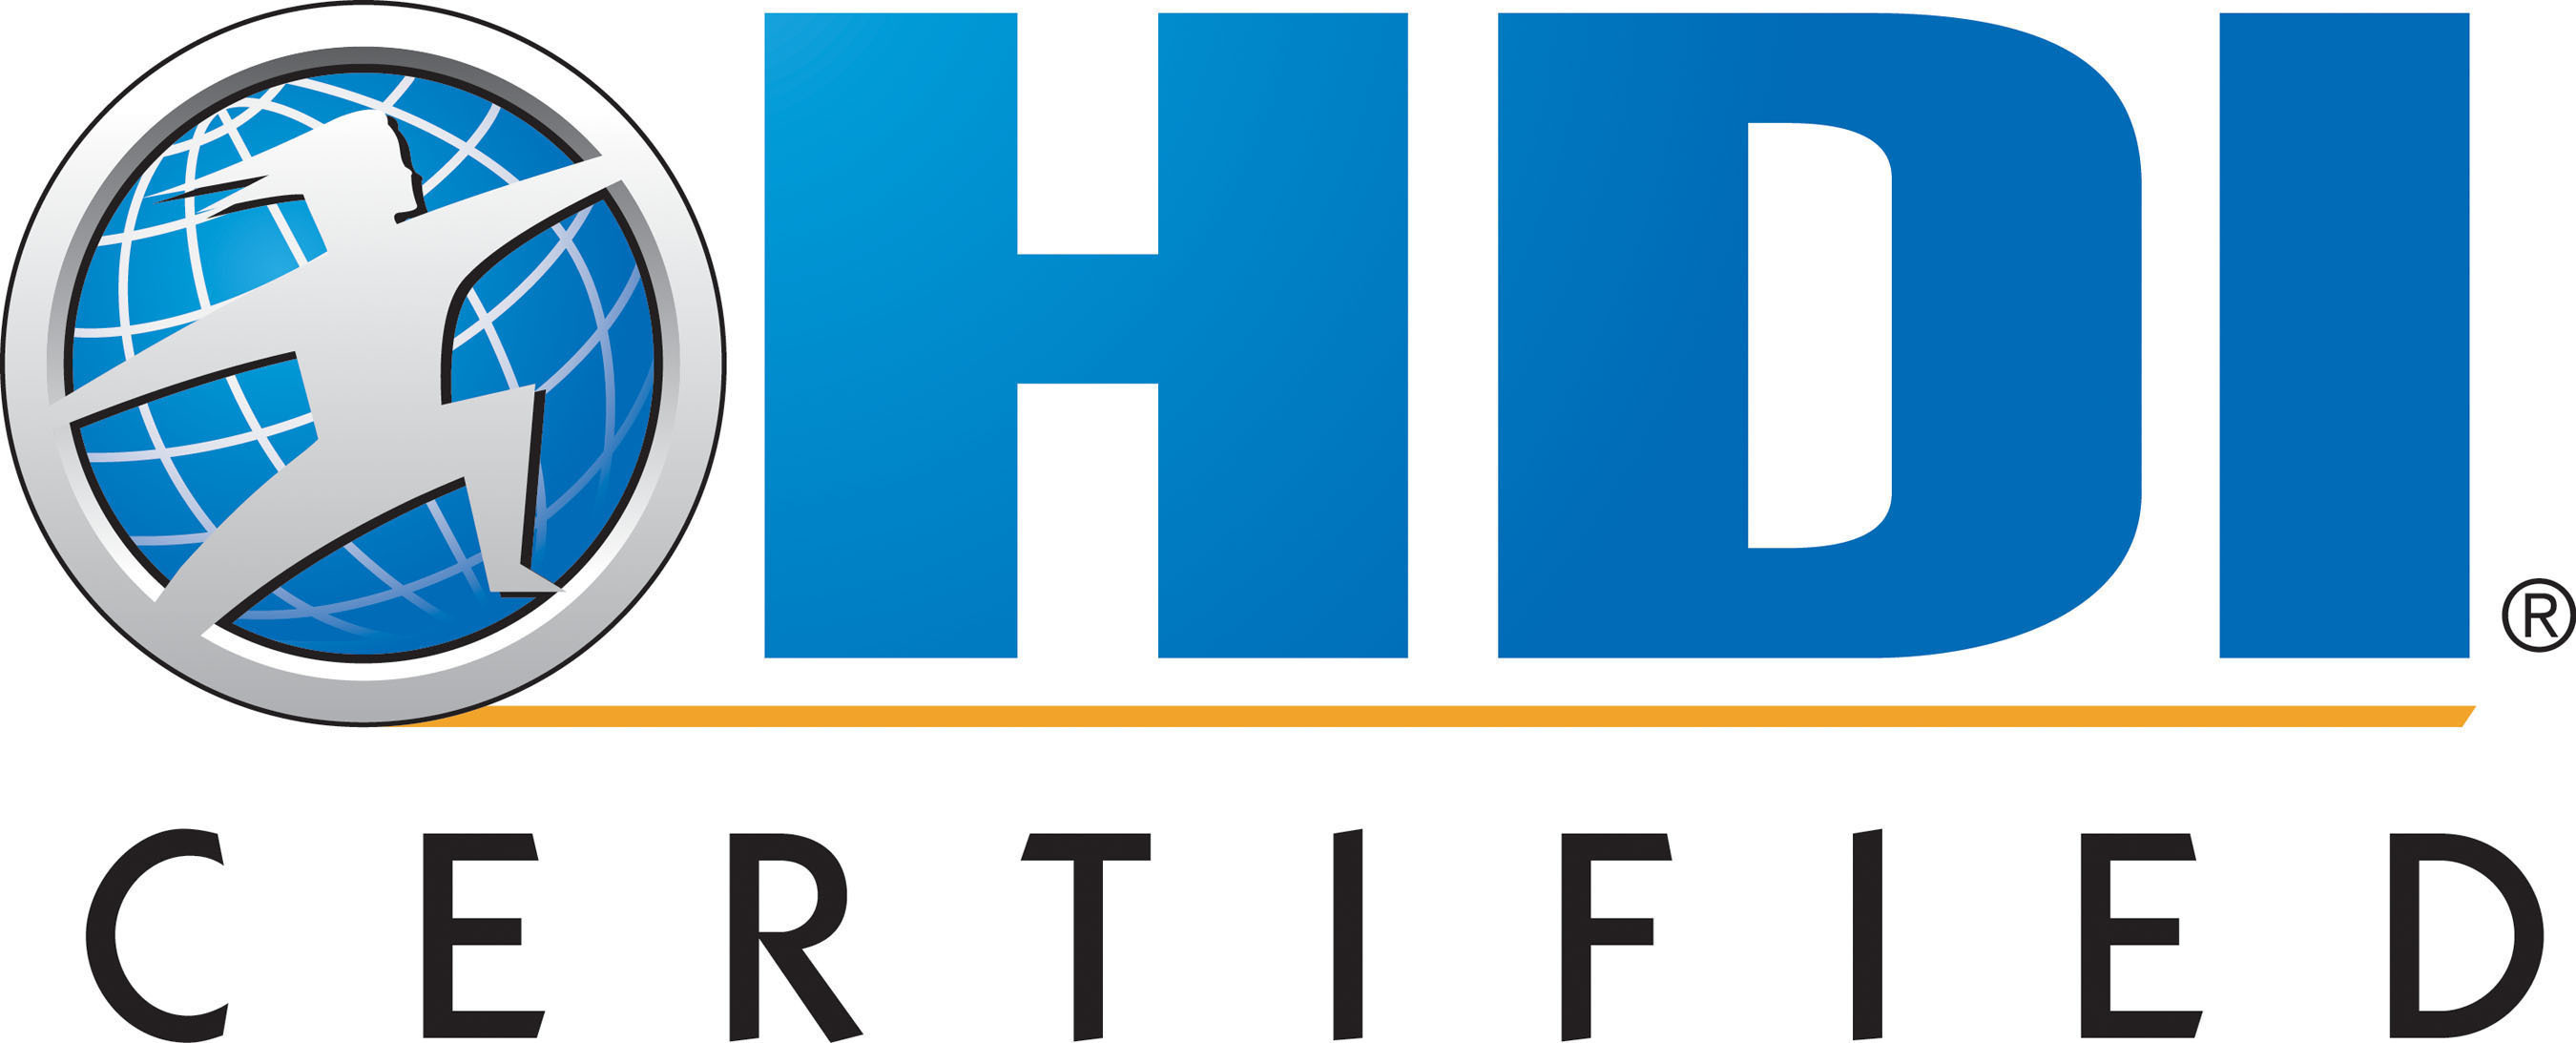 Hdi Adds New Certification For Technical Support Professionals